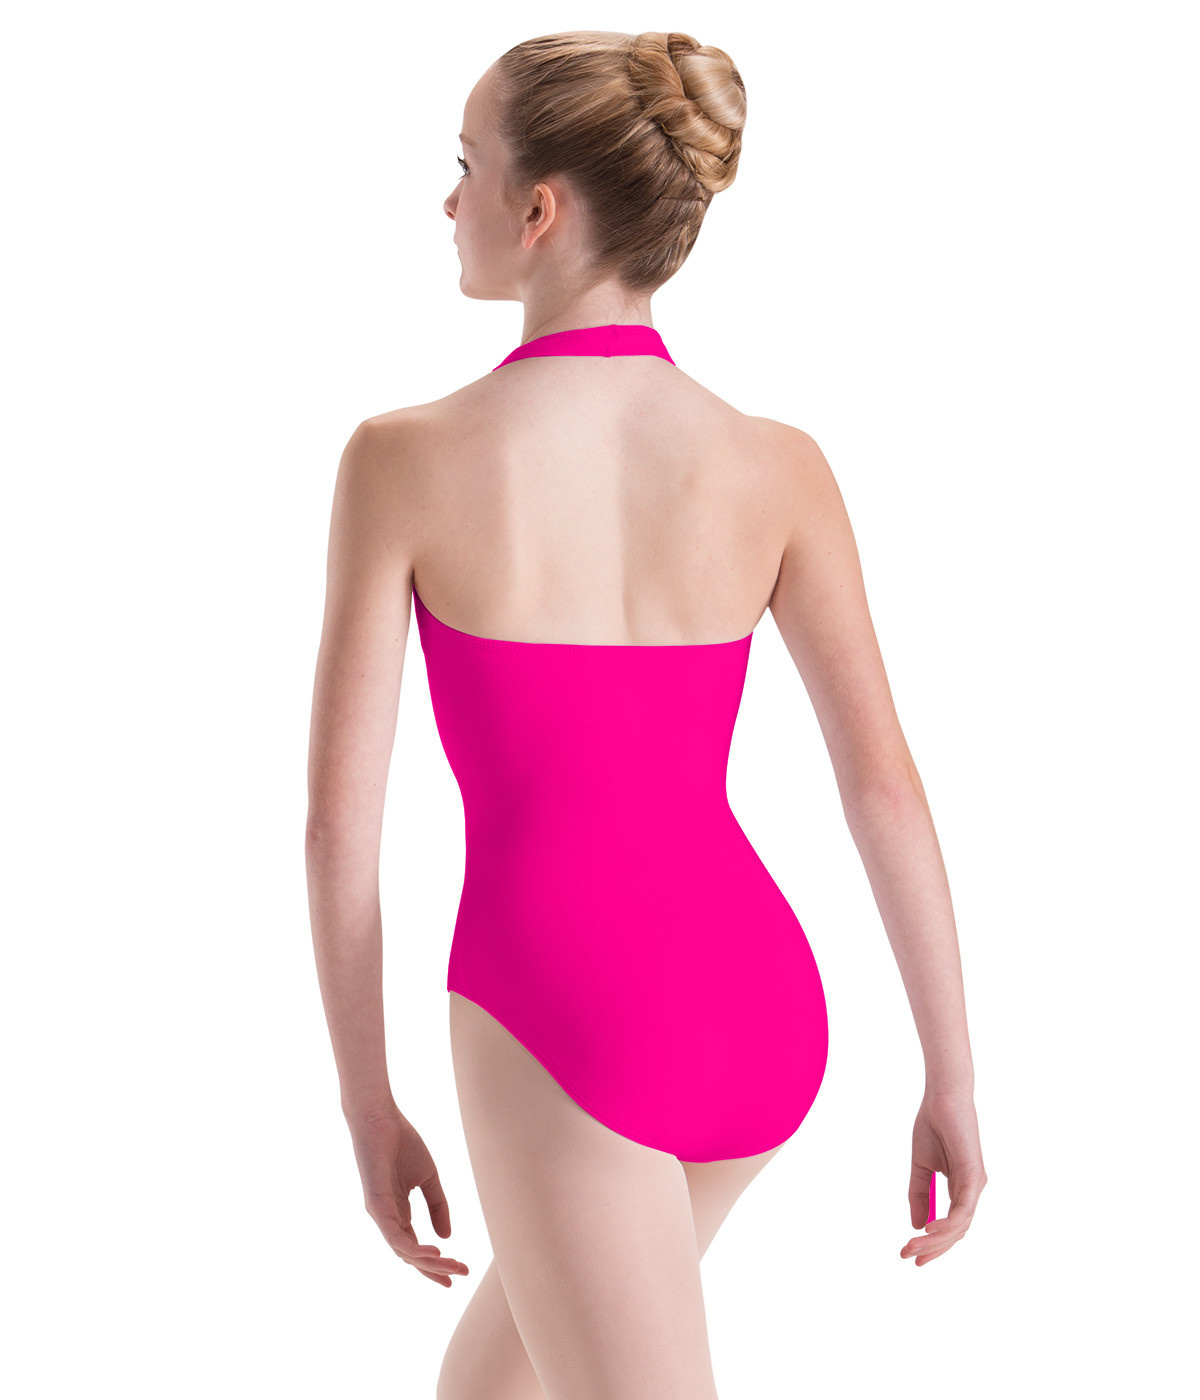 Motionwear Halter Leotard by Motionwear Style 2076